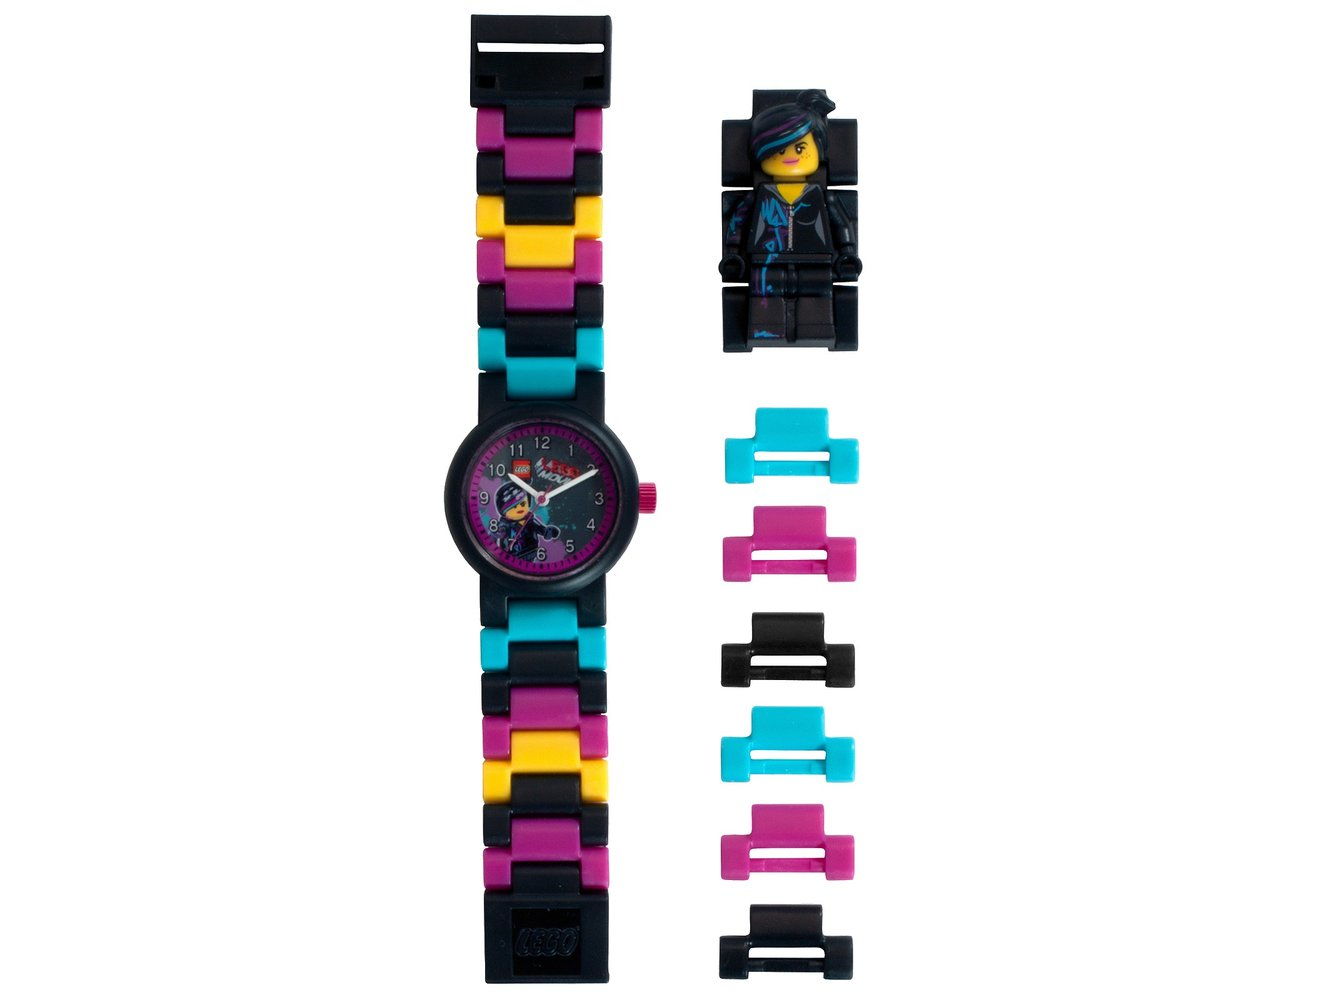 Lucy / Wyldstyle Minifigure Link Watch